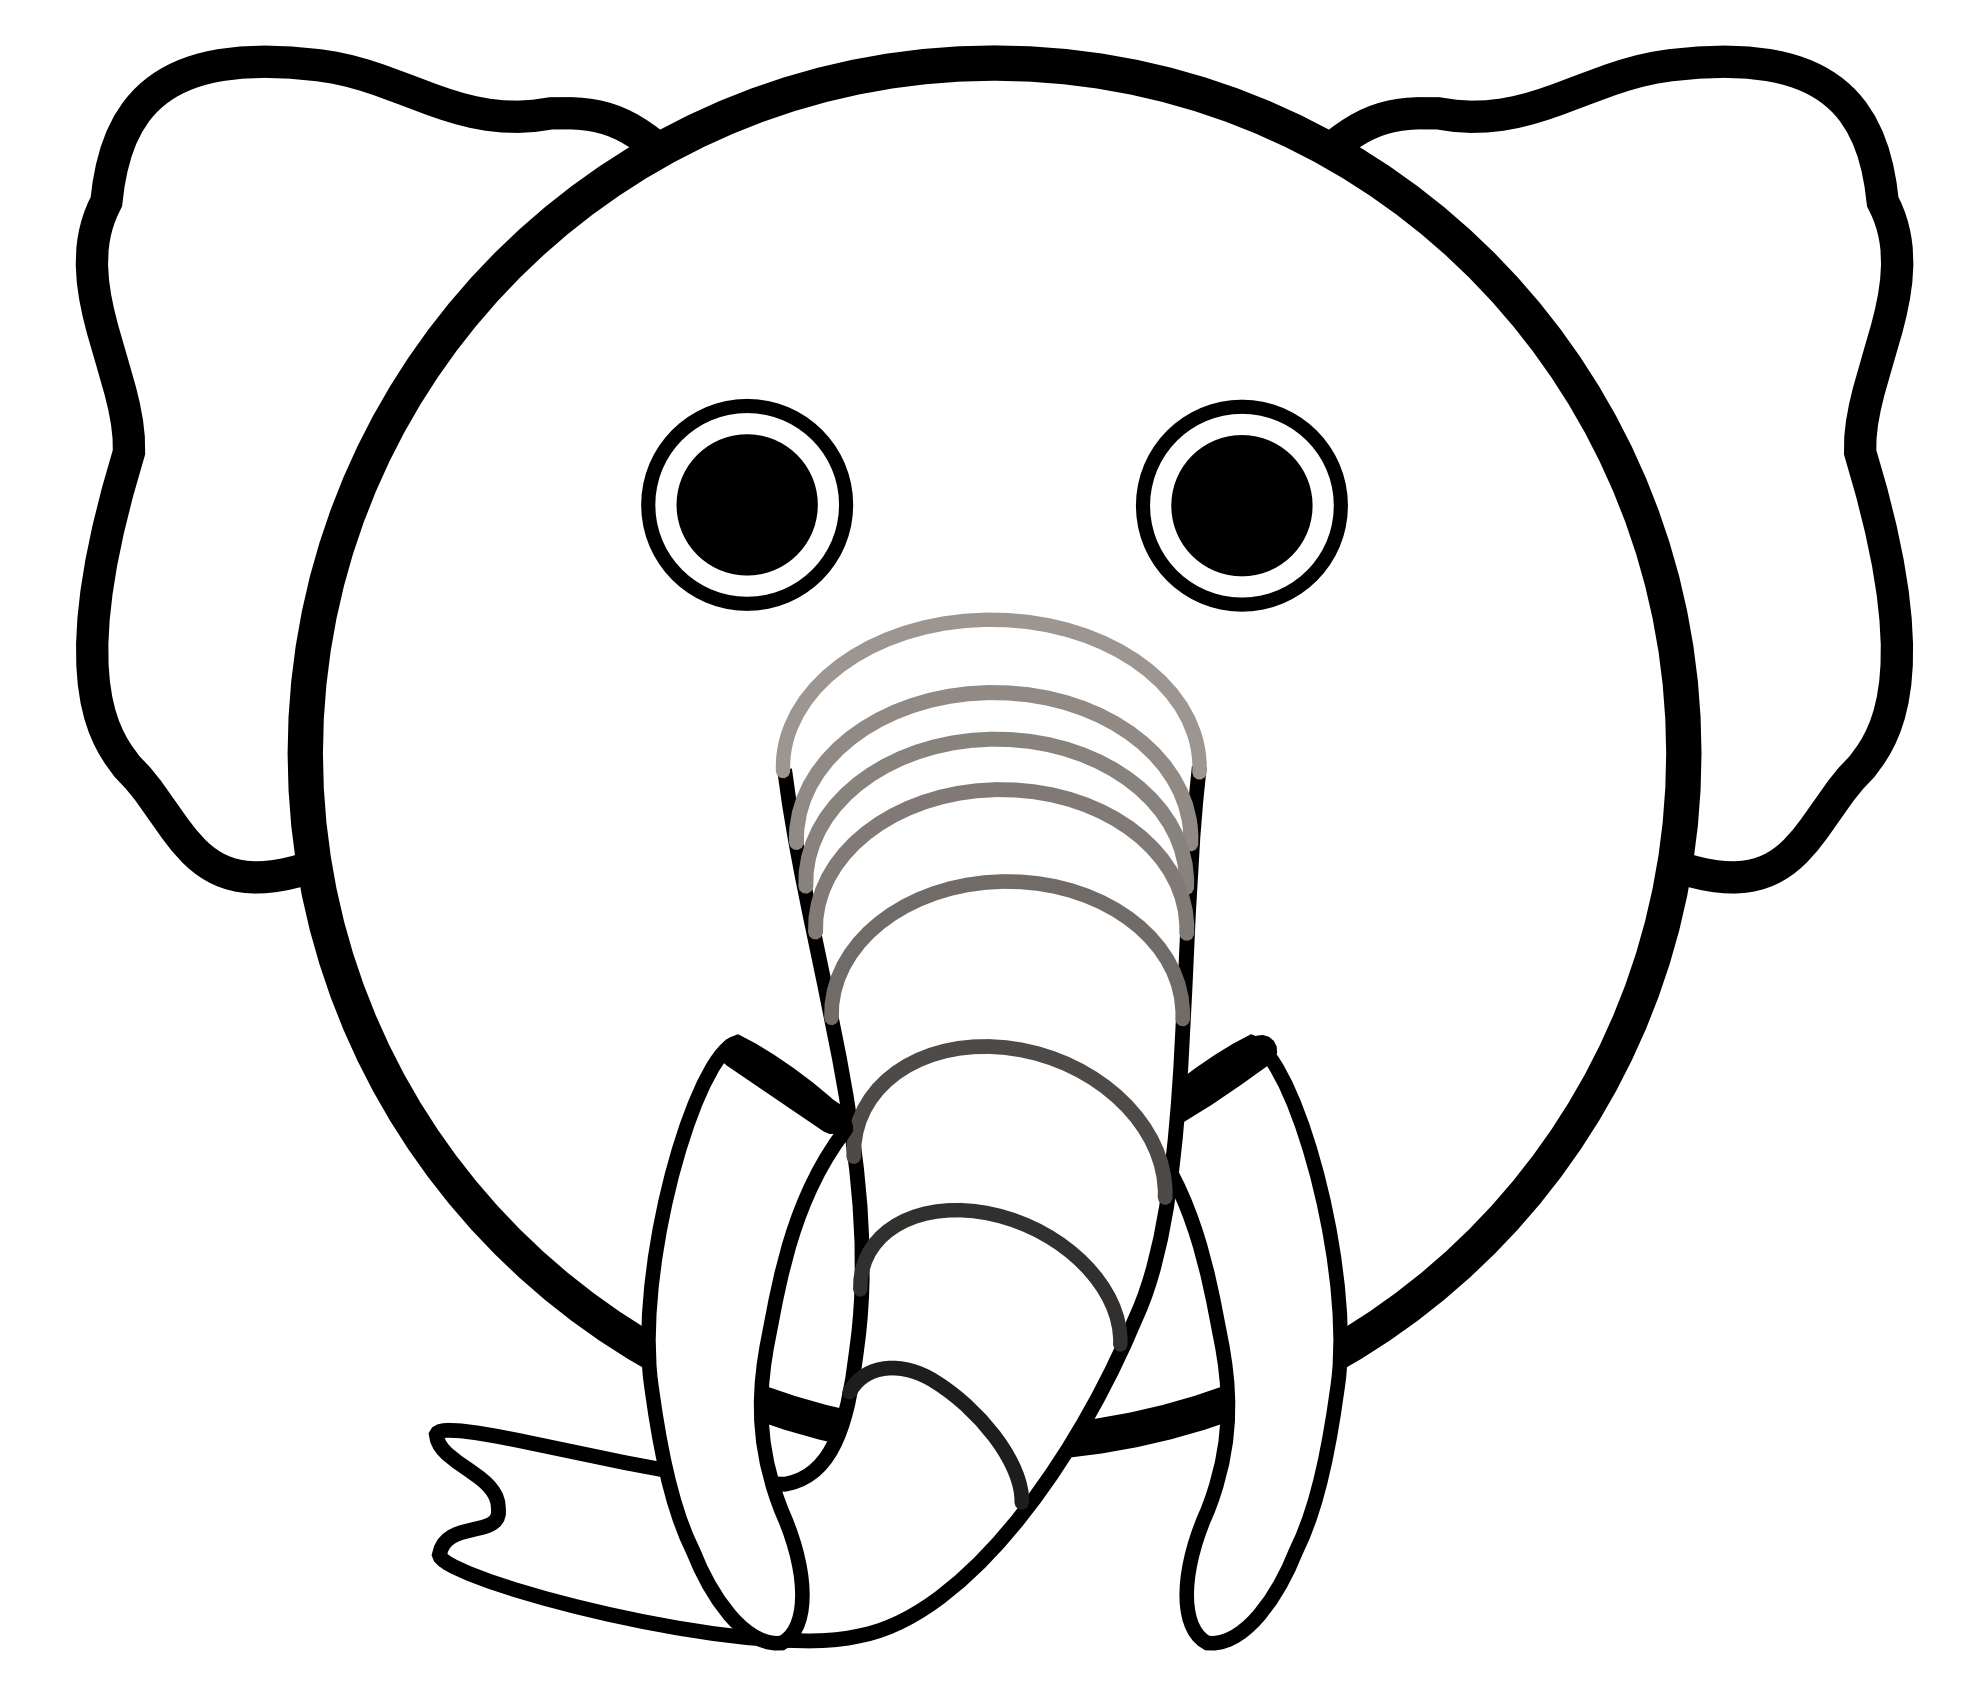 Clipart panda free images. Elephant clip art elephant head banner freeuse download